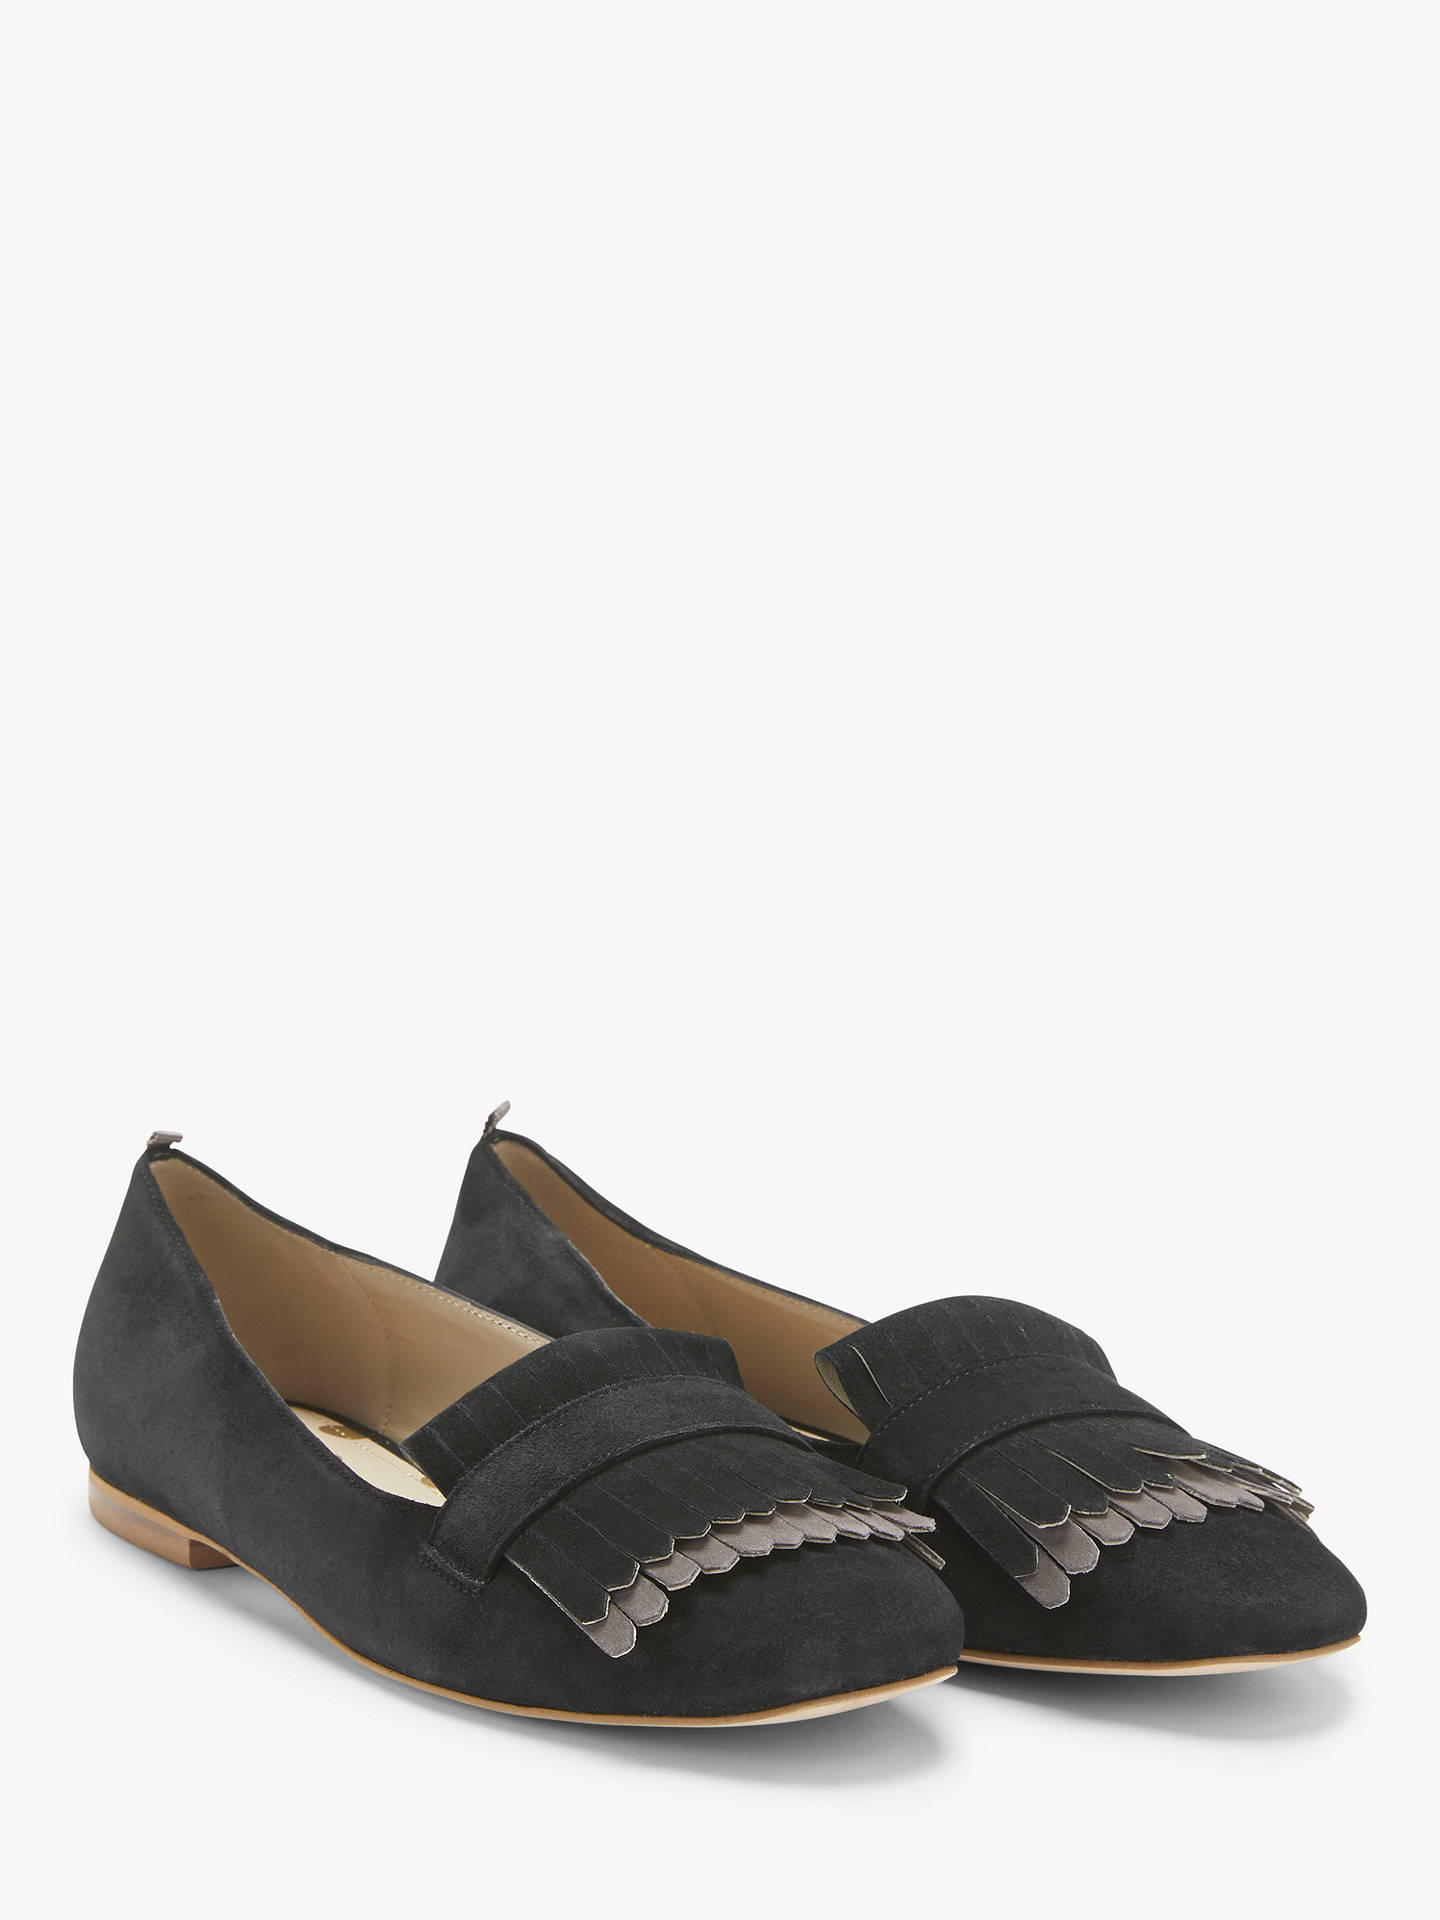 9b43cc38a06 Boden Melody Fringe Loafers at John Lewis   Partners